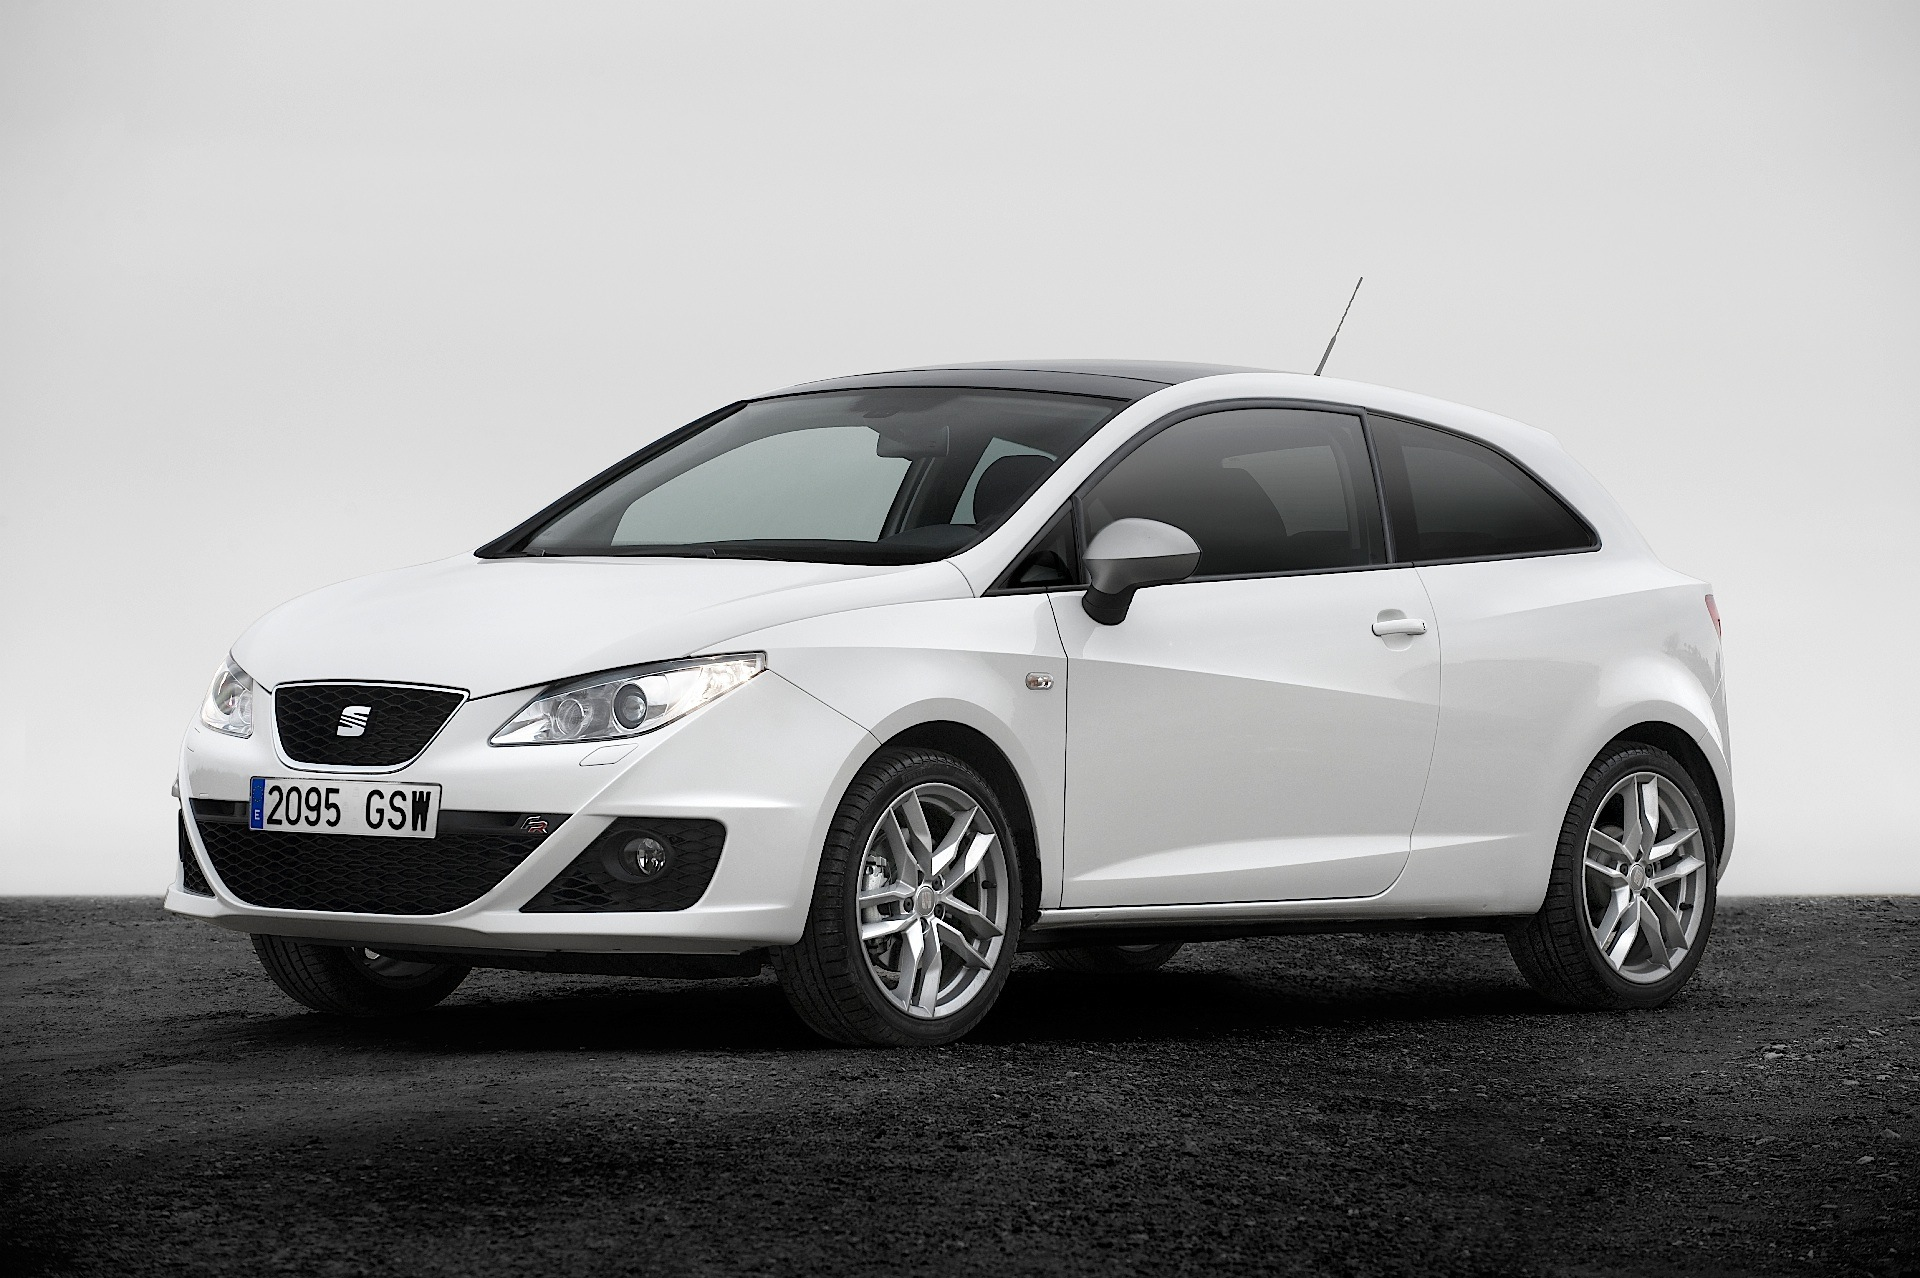 2009 seat ibiza sc pictures information and specs auto. Black Bedroom Furniture Sets. Home Design Ideas